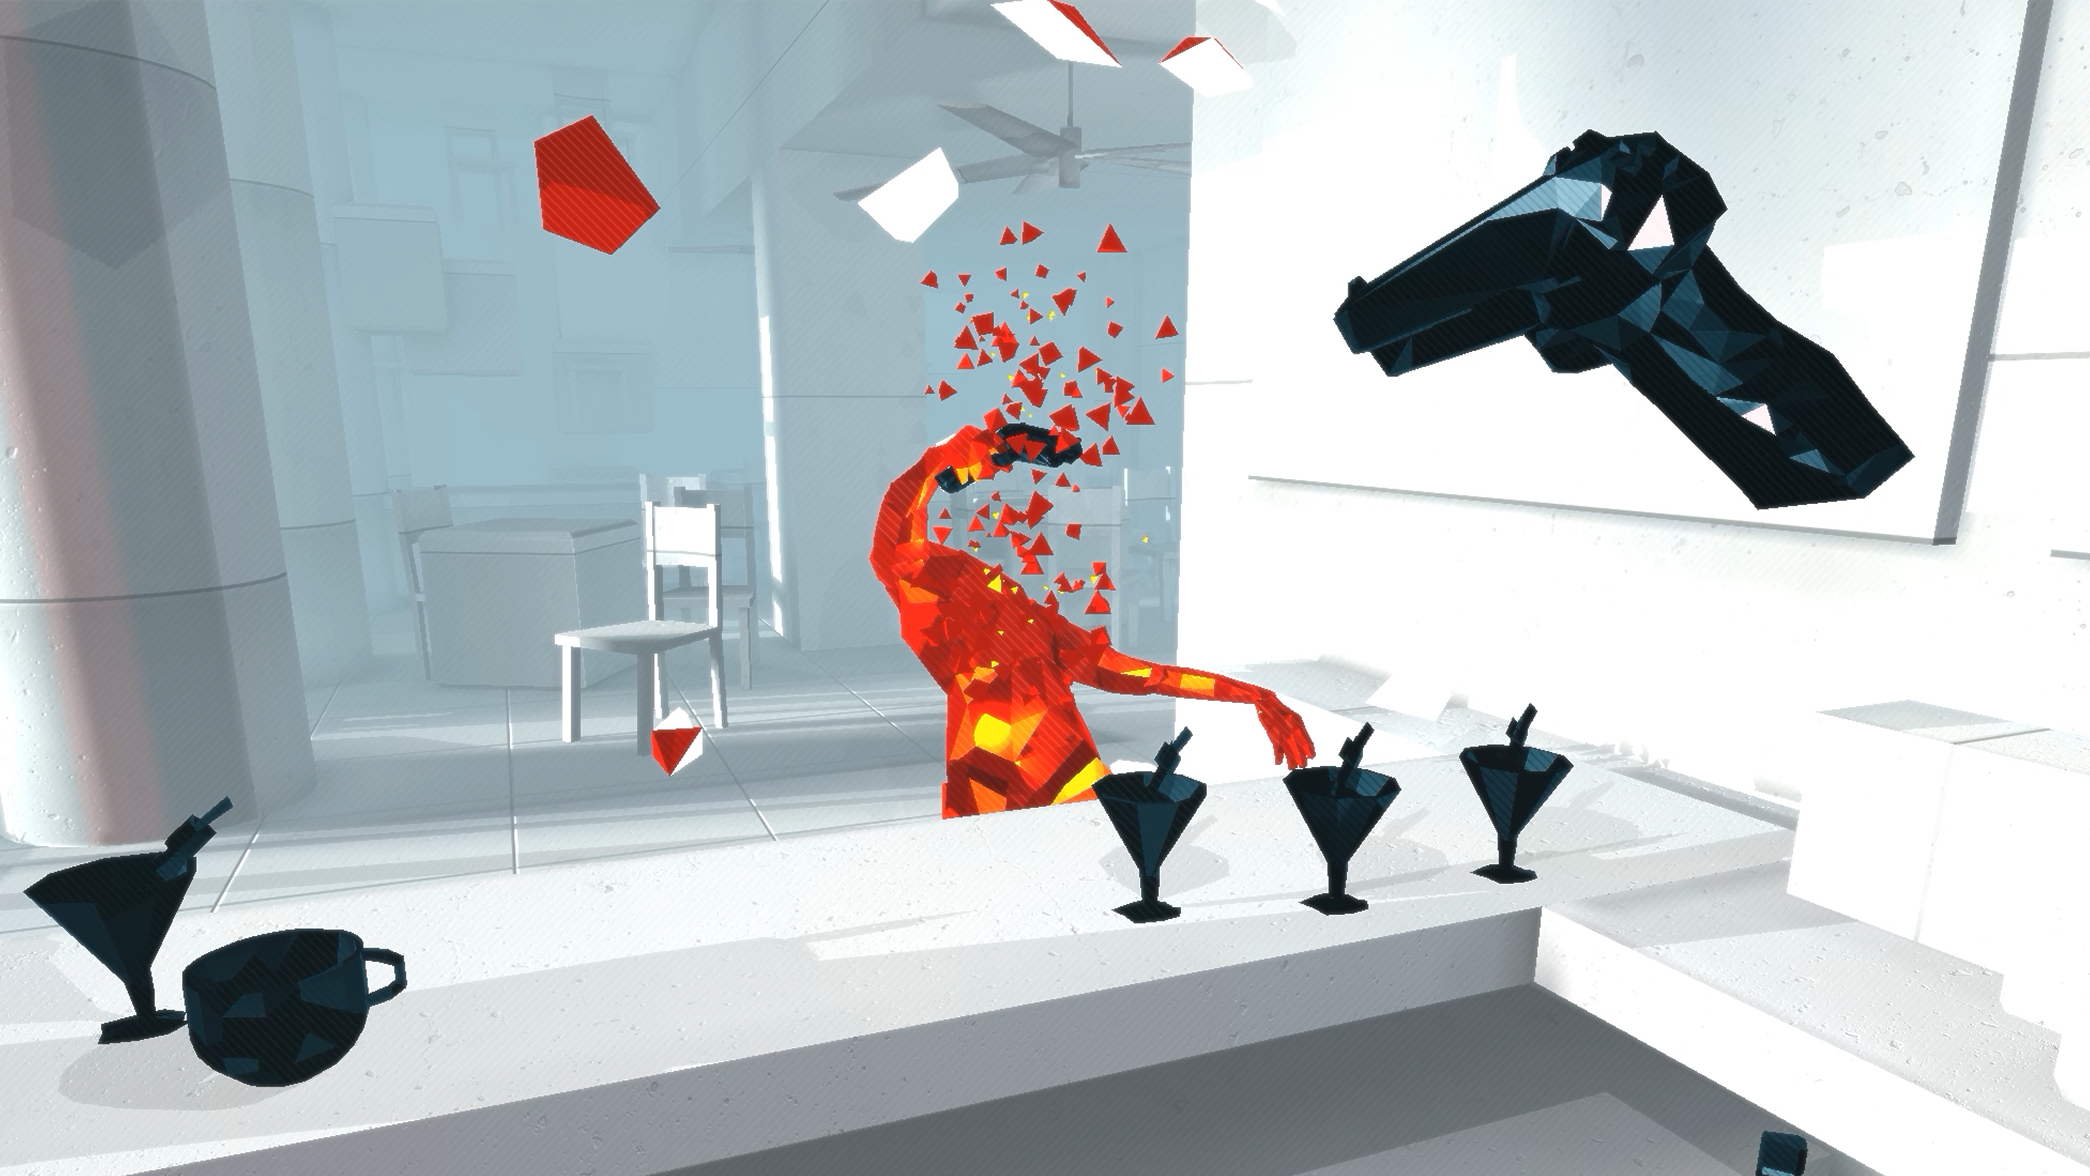 Superhot VR bar fight